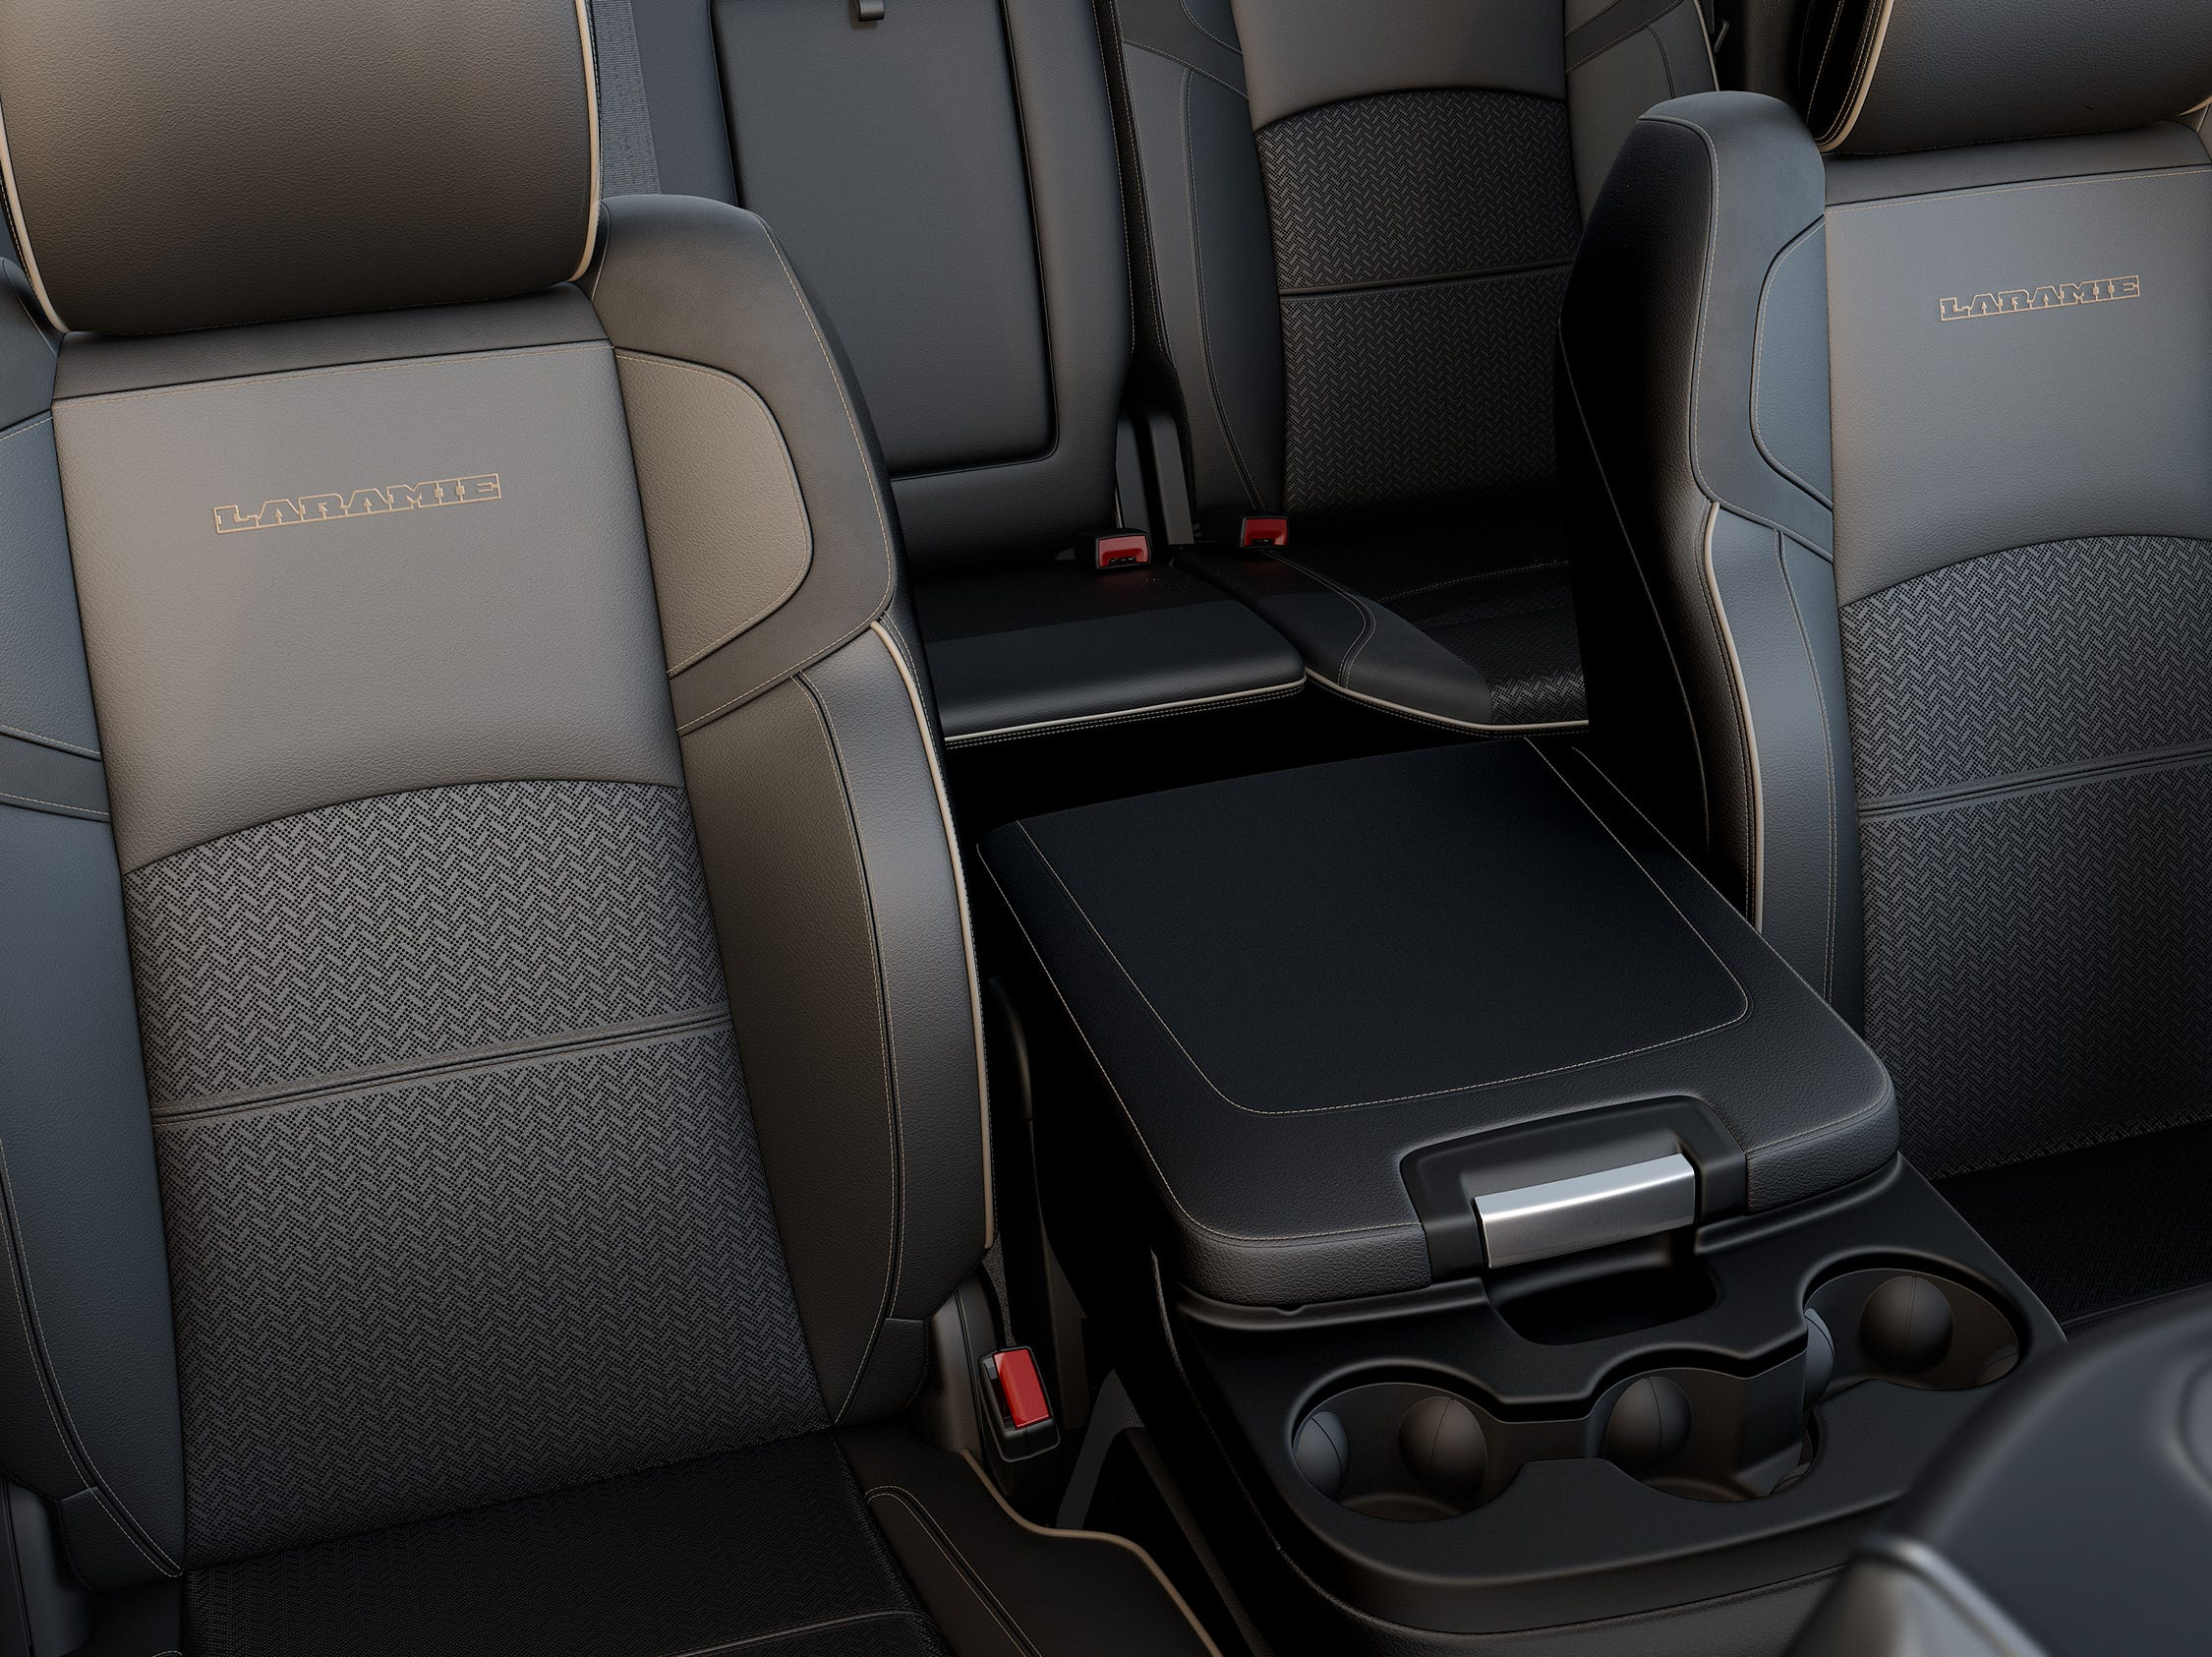 2019 Ram Heavy Duty leather bench console down